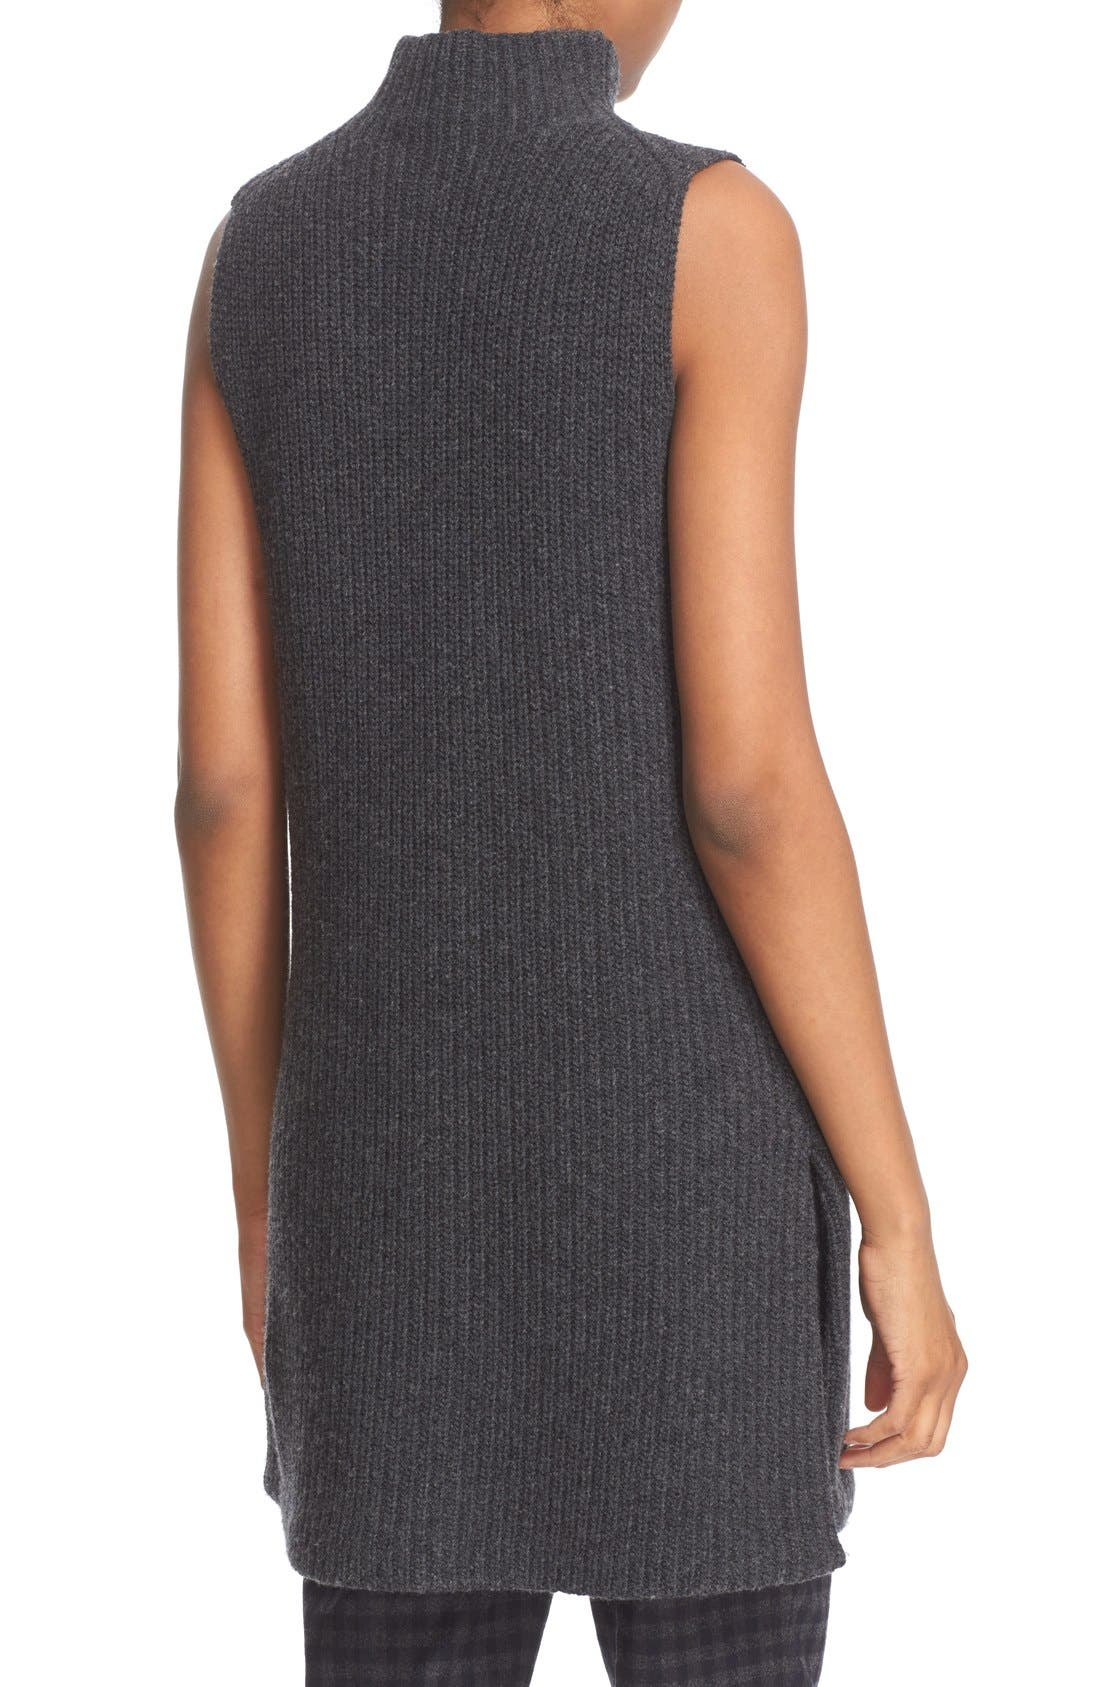 THEORY,                             'Embree Charmant' Sleeveless Wool & Cashmere Mock Neck Tunic Sweater,                             Alternate thumbnail 5, color,                             200